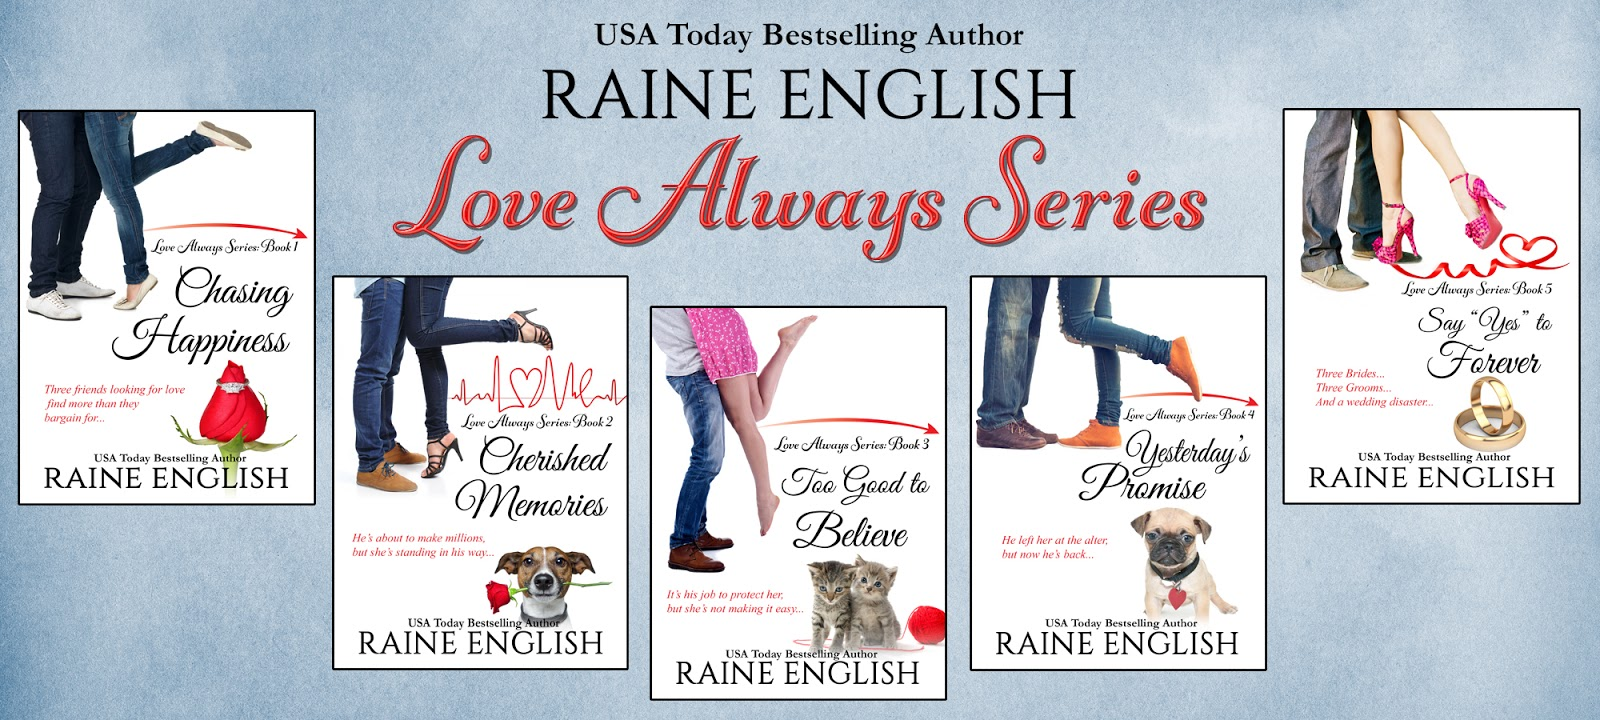 Sweet Romance Reads: The Challenges of Writing a Series by Raine English